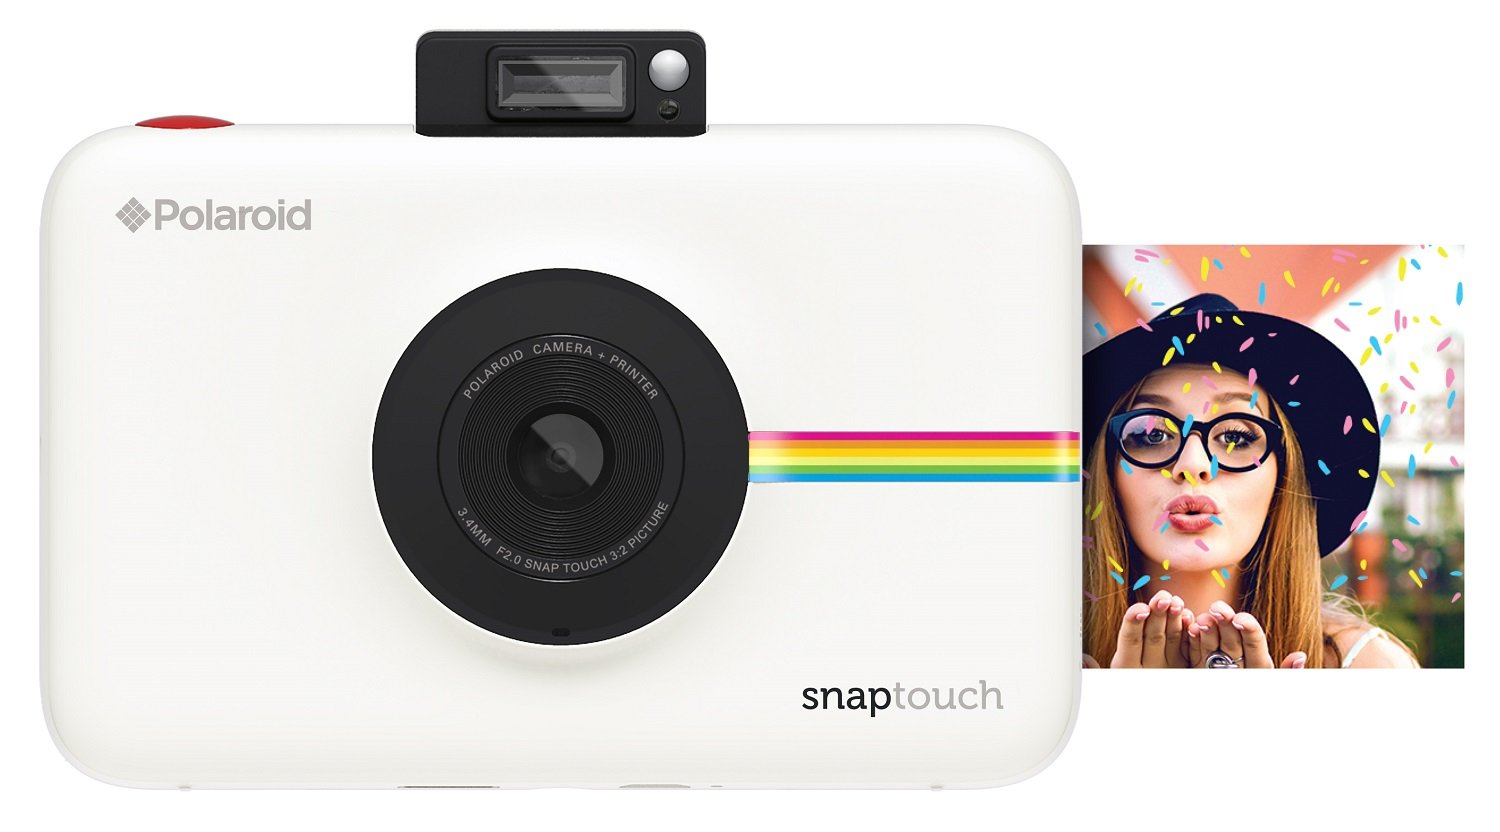 8f0681533ab06 Amazon.com   Polaroid Snap Touch Portable Instant Print Digital Camera with  LCD Touchscreen Display (White)   Camera   Photo